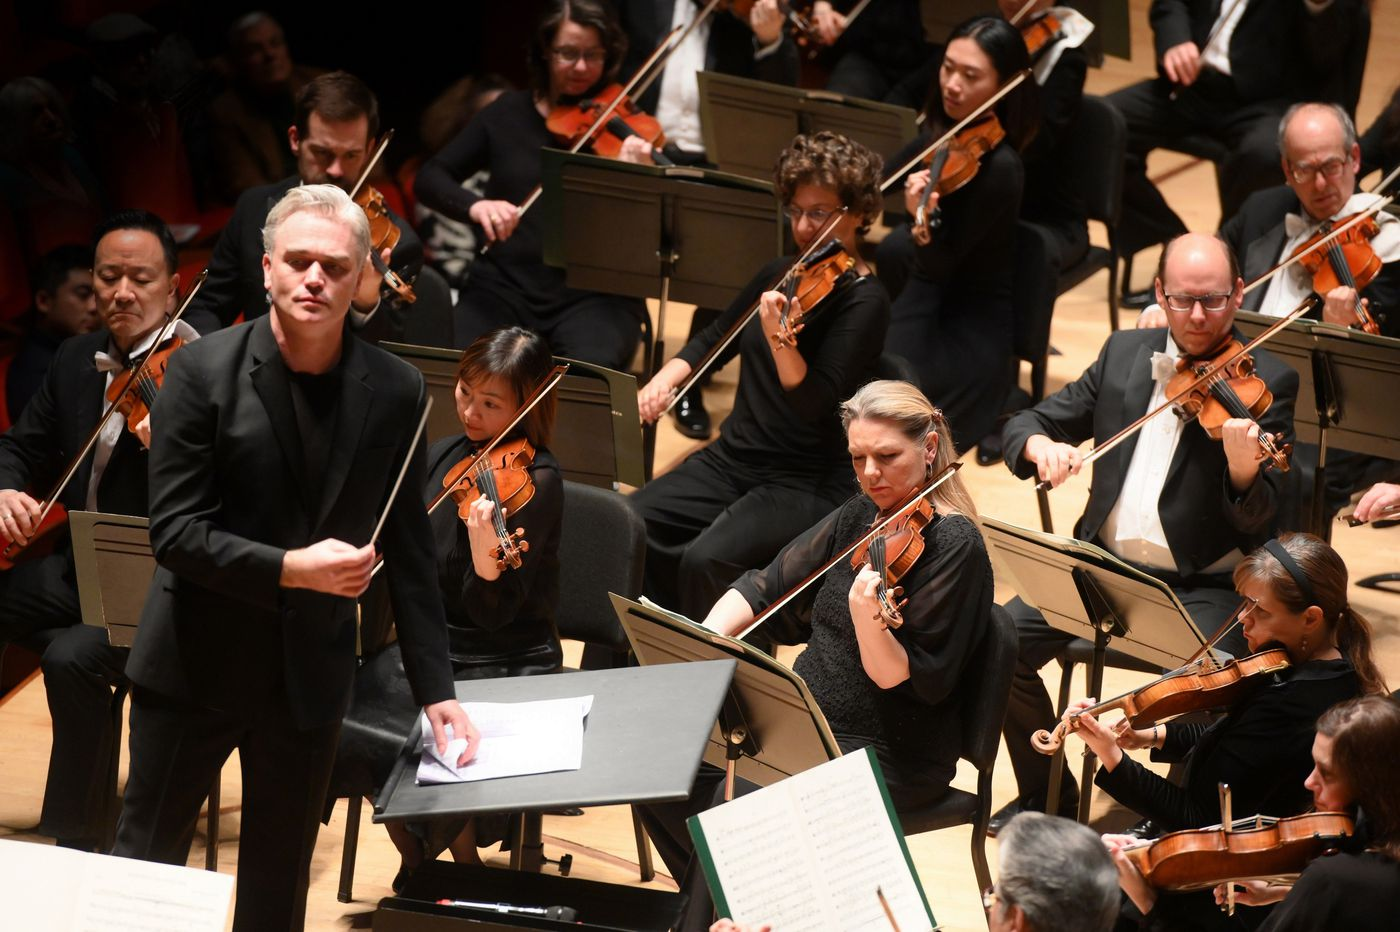 Conductor Edward Gardner takes the Philadelphia Orchestra to Xanadu in his debut